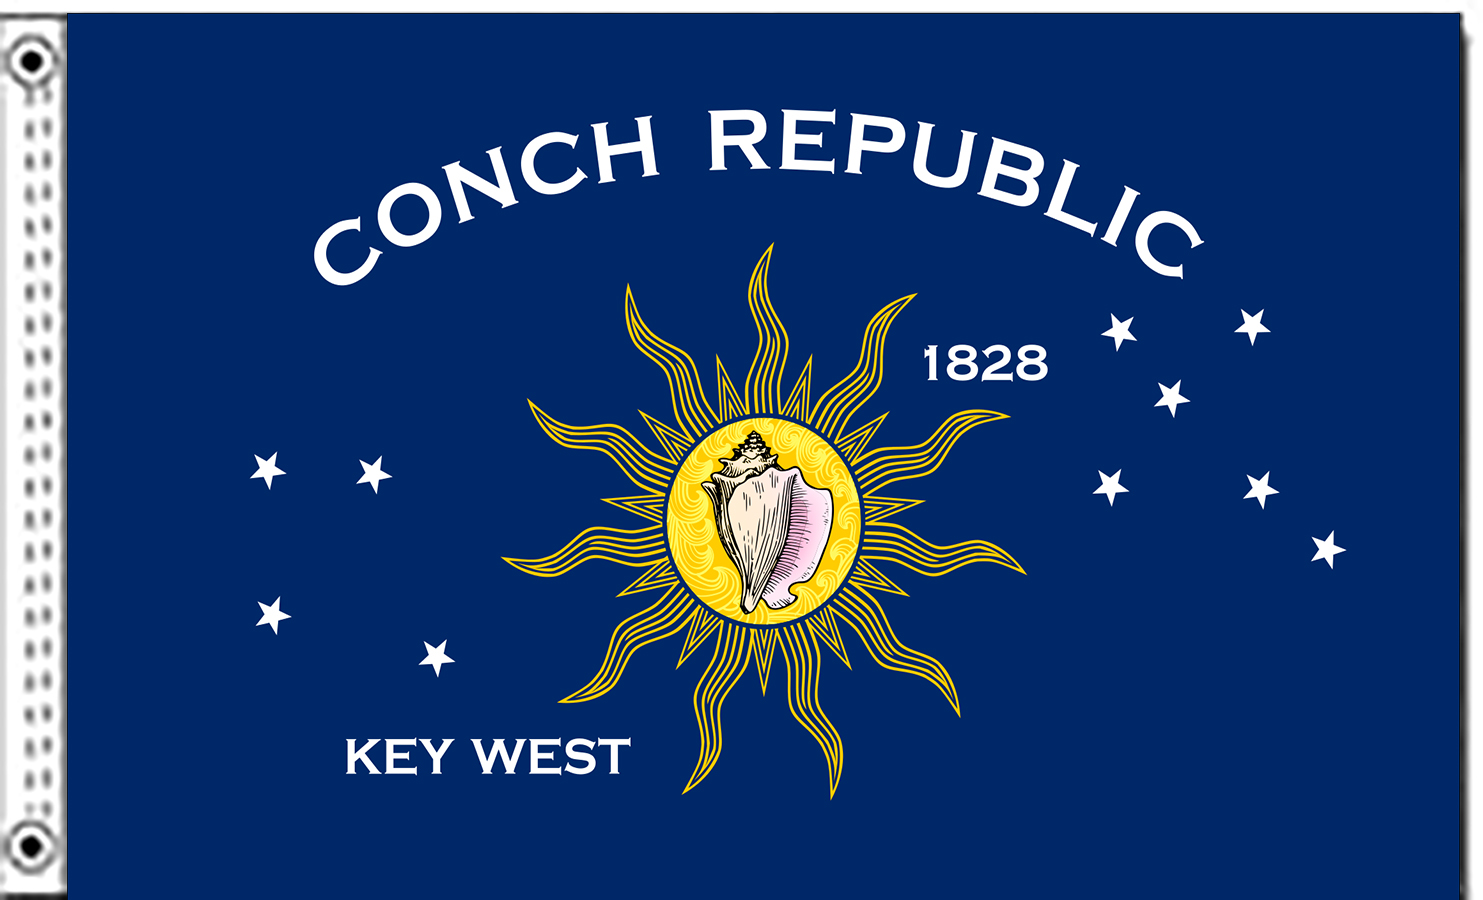 Conch Republic Flags